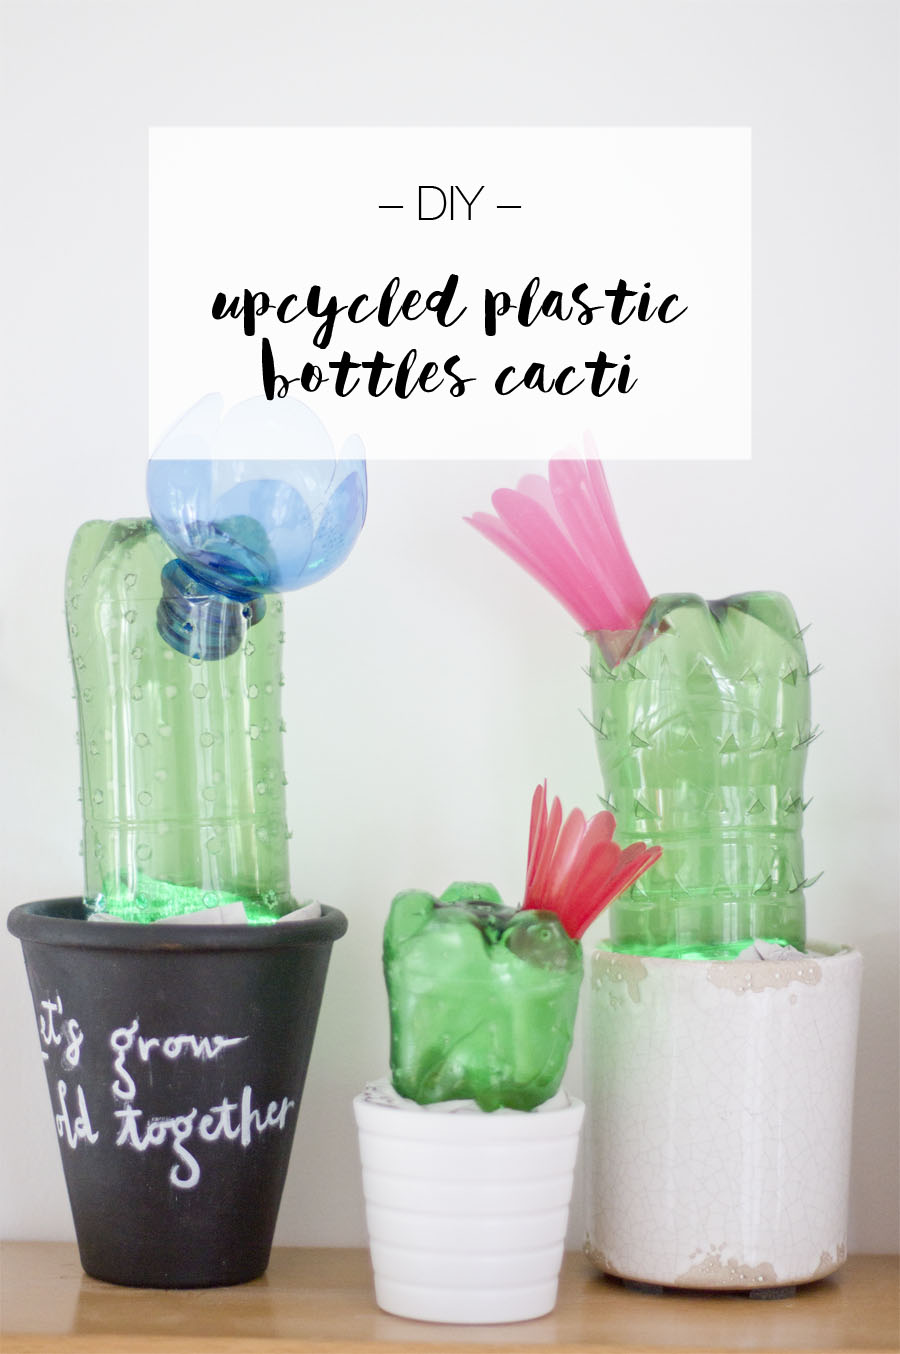 DIY upcycled plastic bottles cactus lights | LOOK WHAT I MADE ...